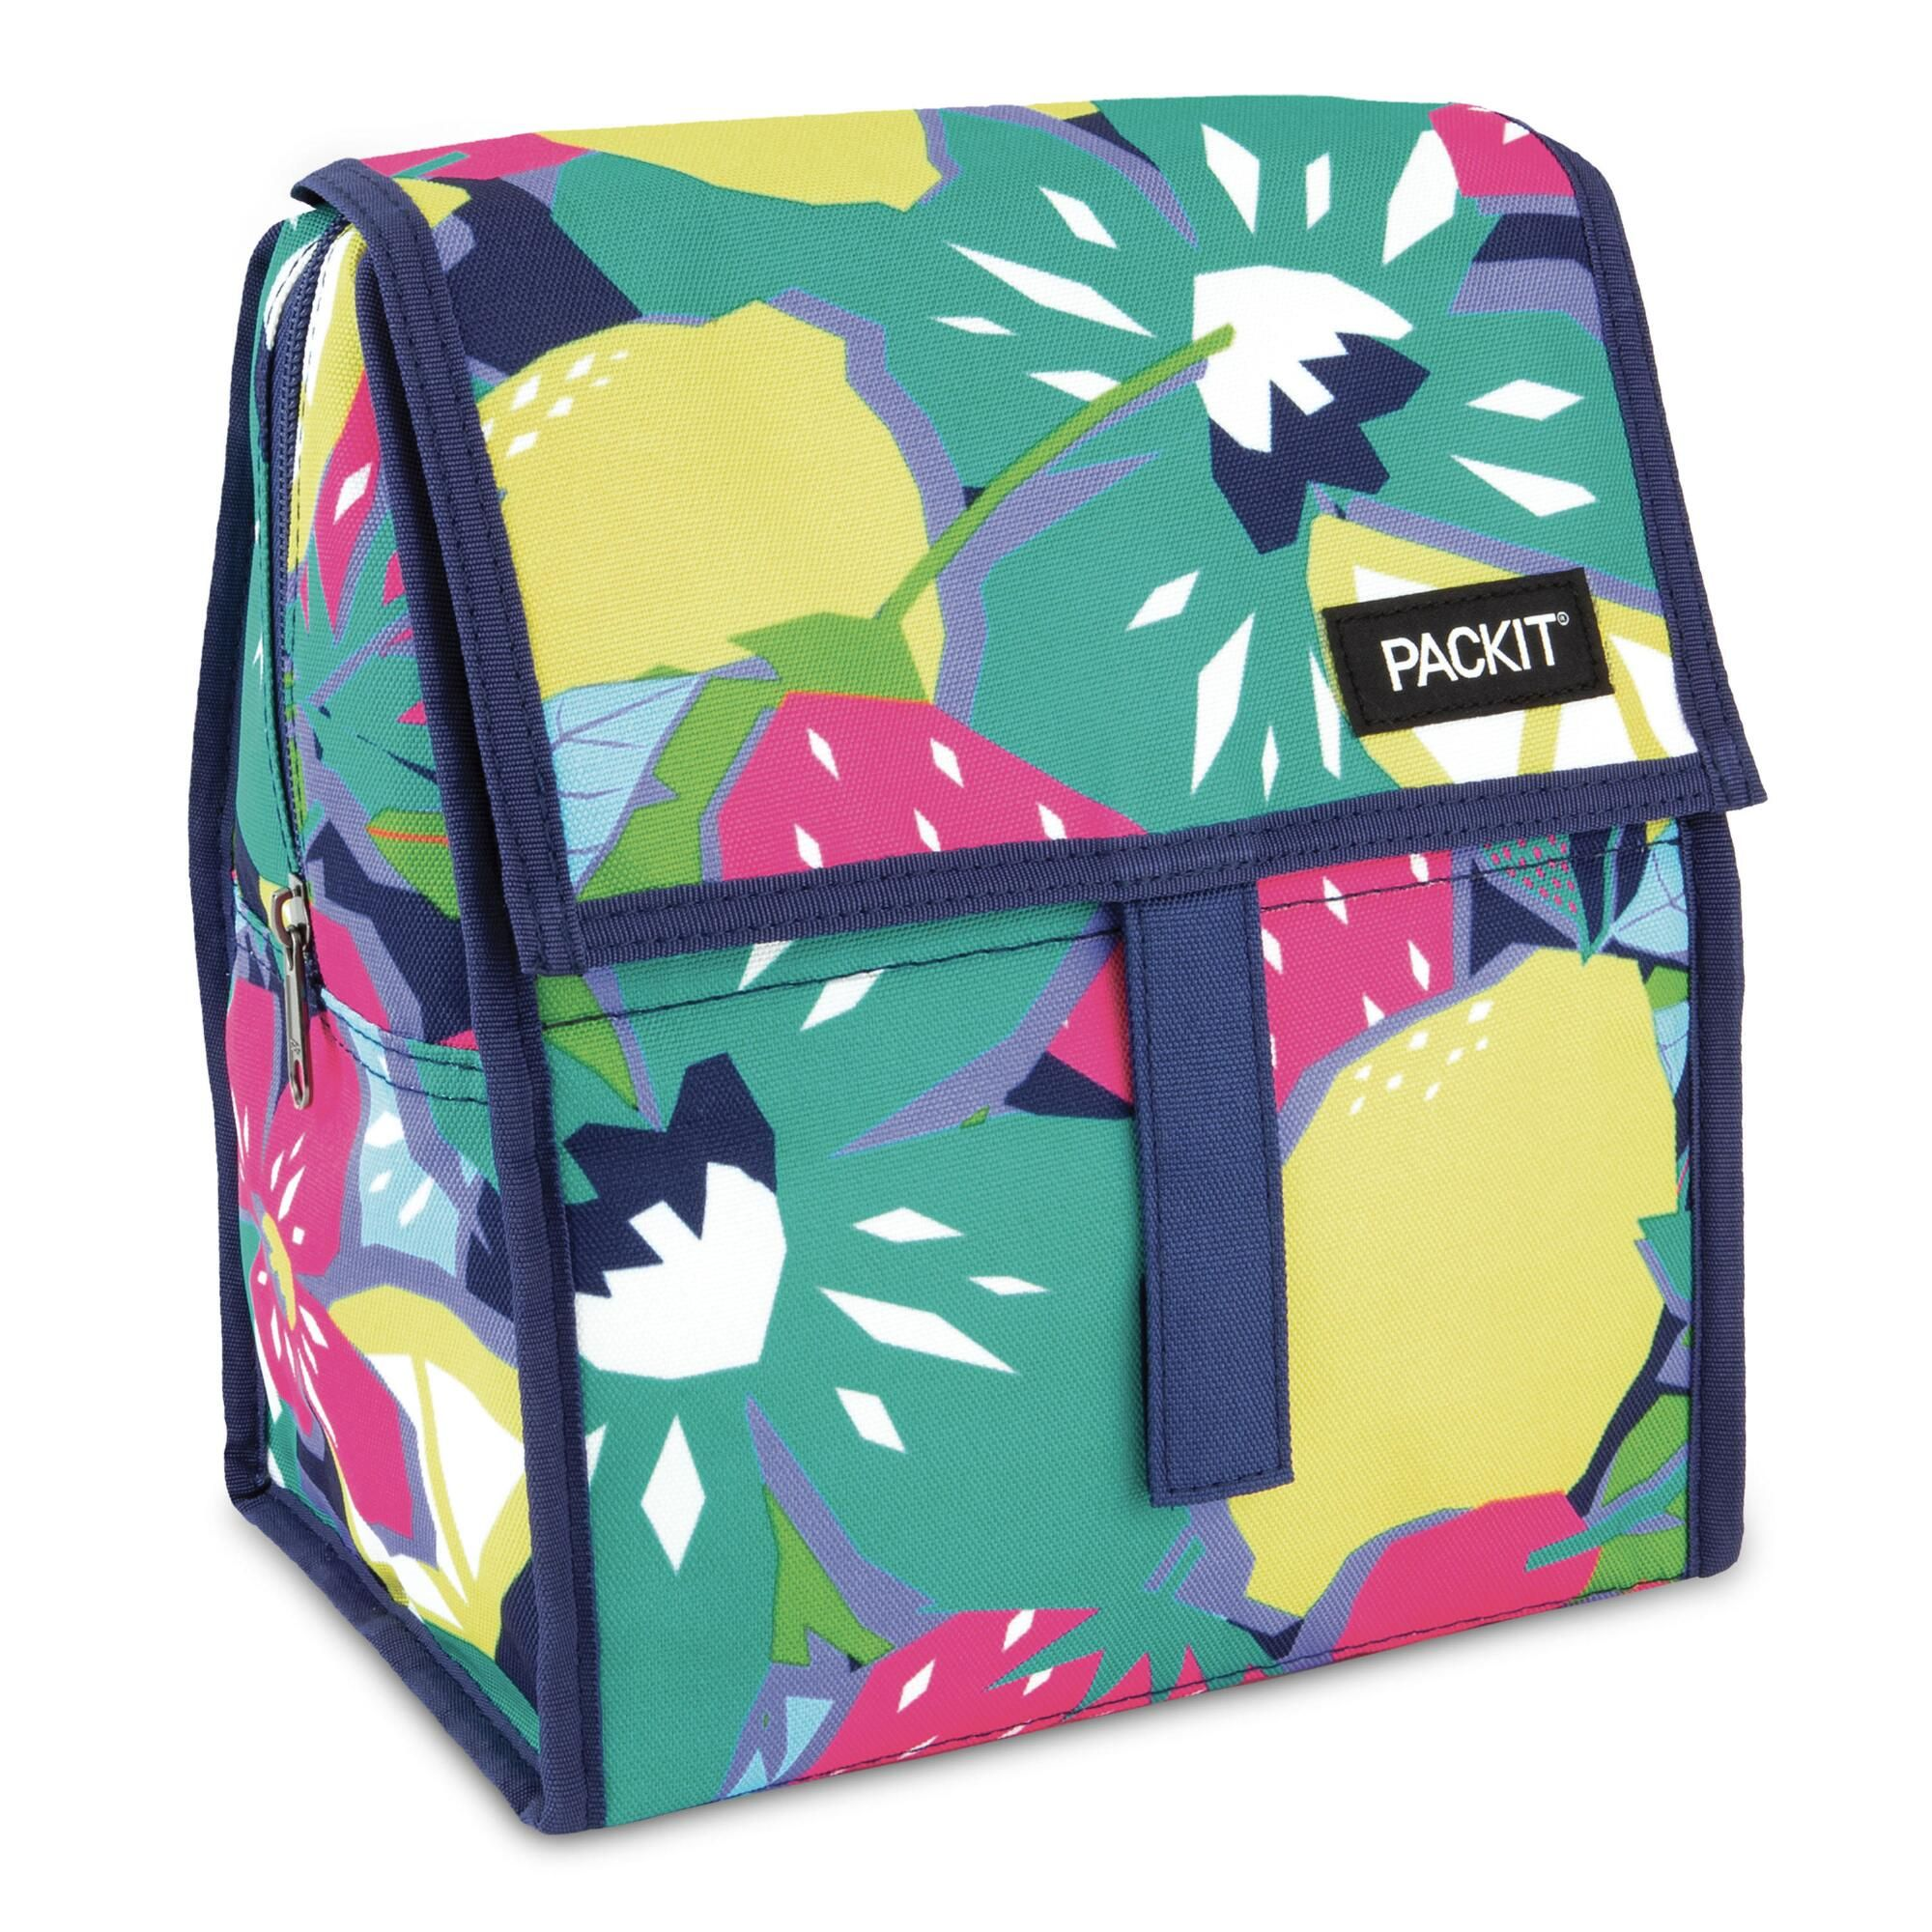 Packit Floral Fruit Freezable Lunch Bag By World Market In 2020